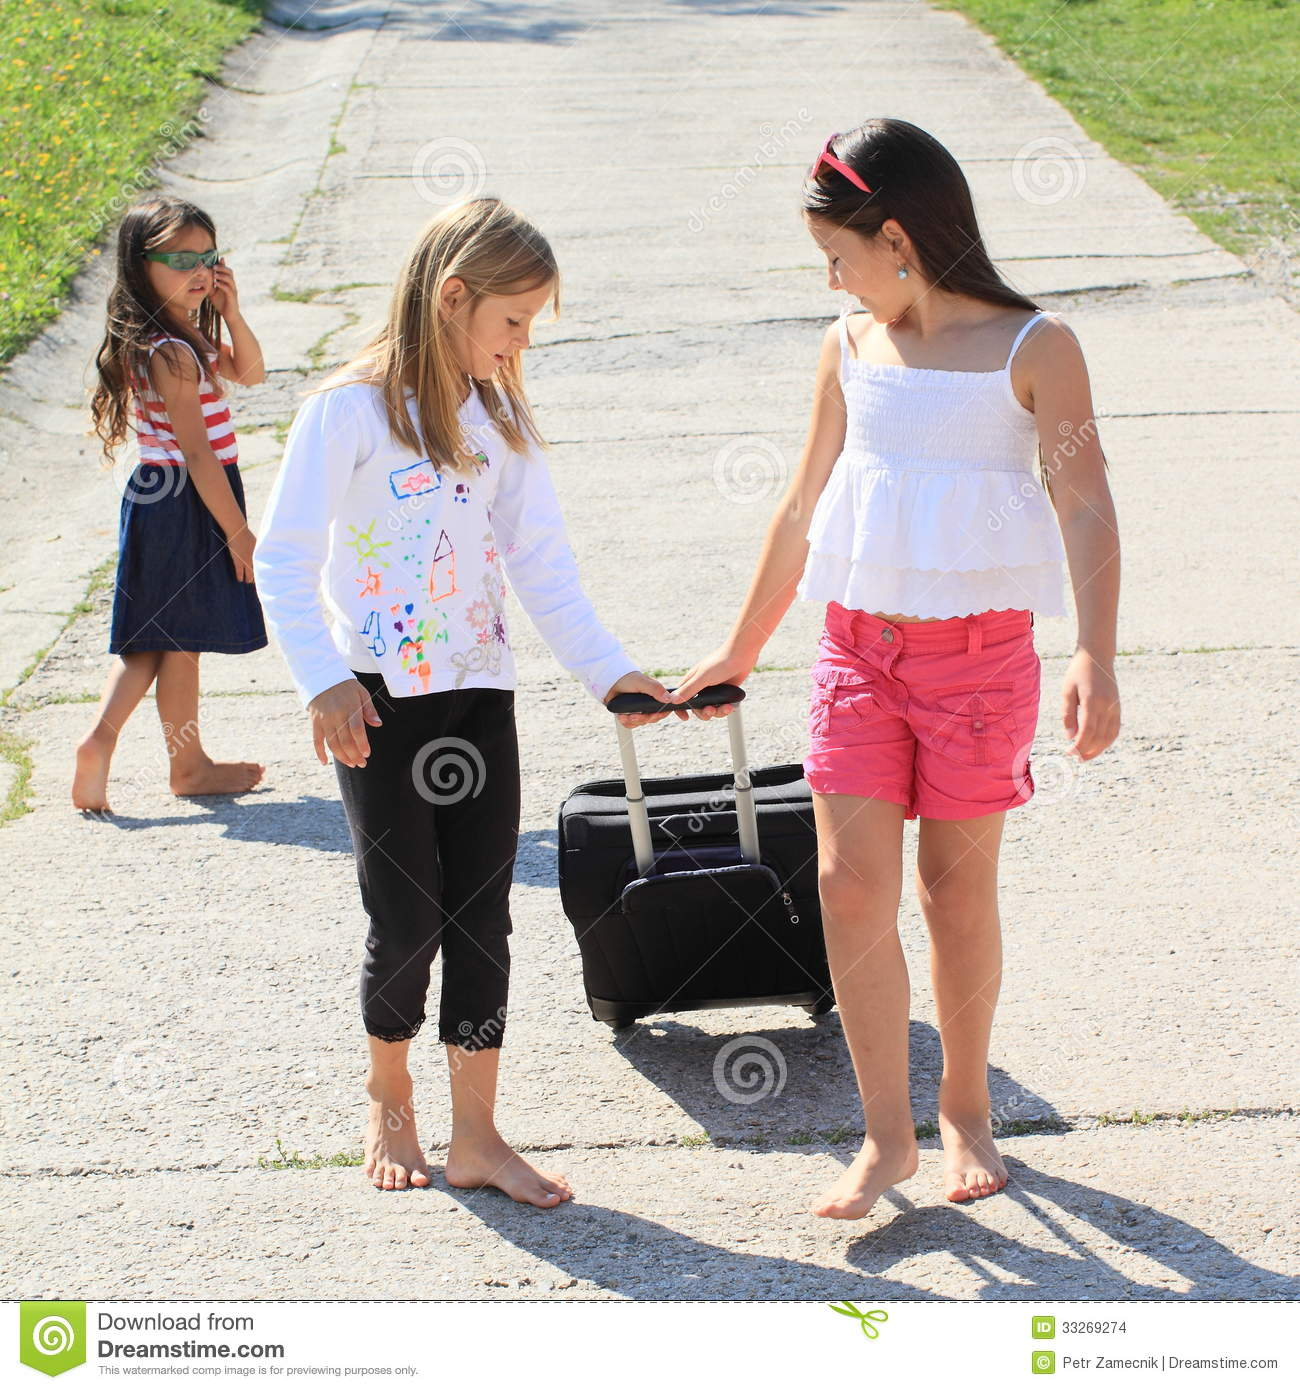 United Baggage Prices Girls With Suitcase Leaving Their Sister Stock Images